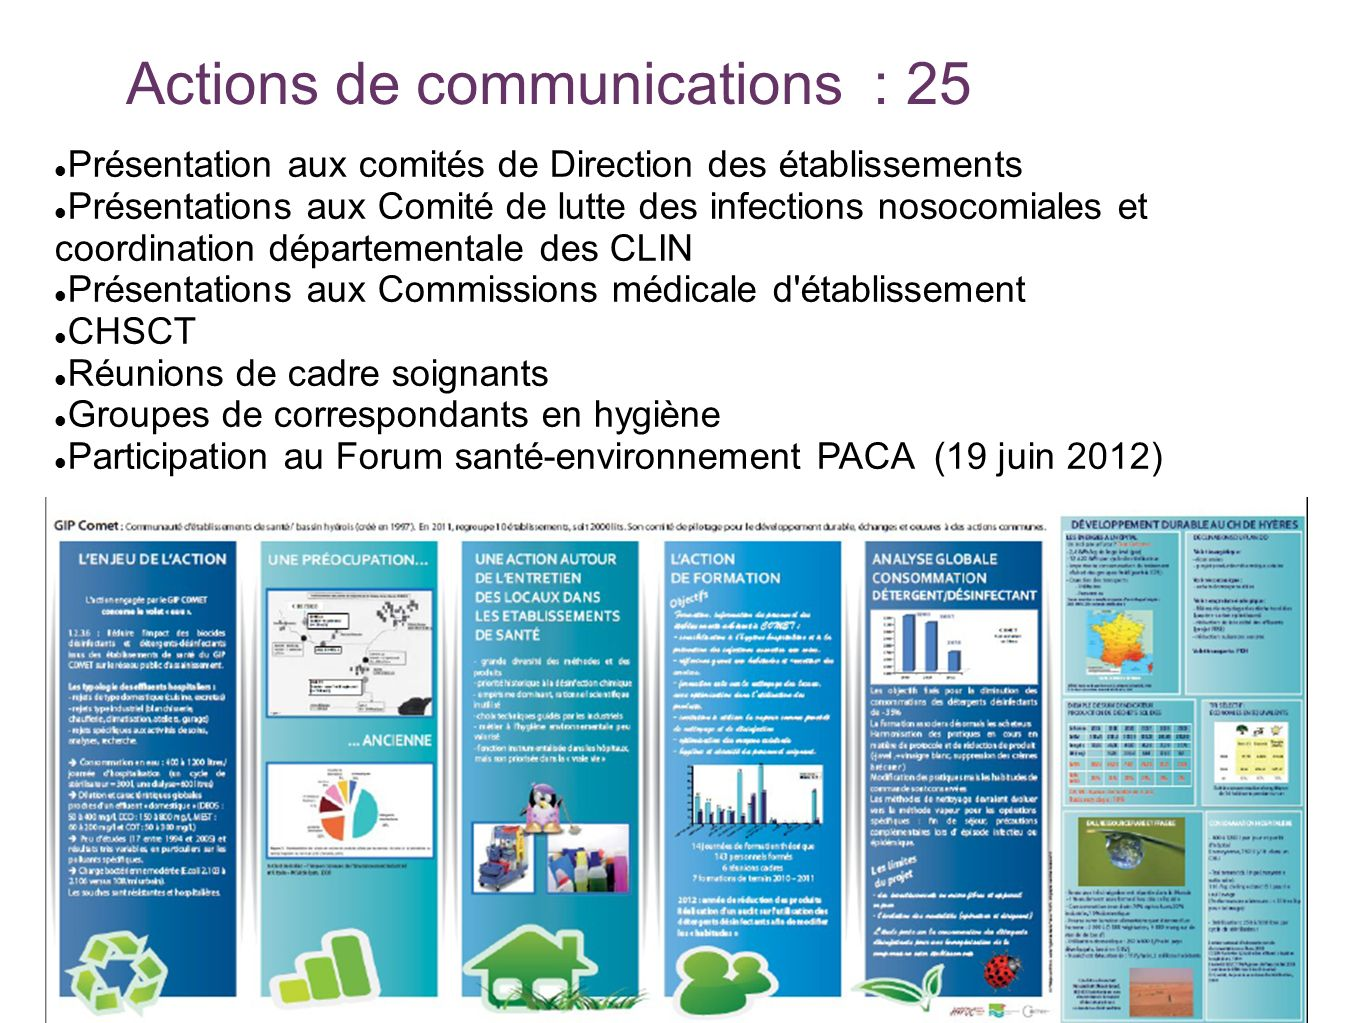 Actions de communications : 25